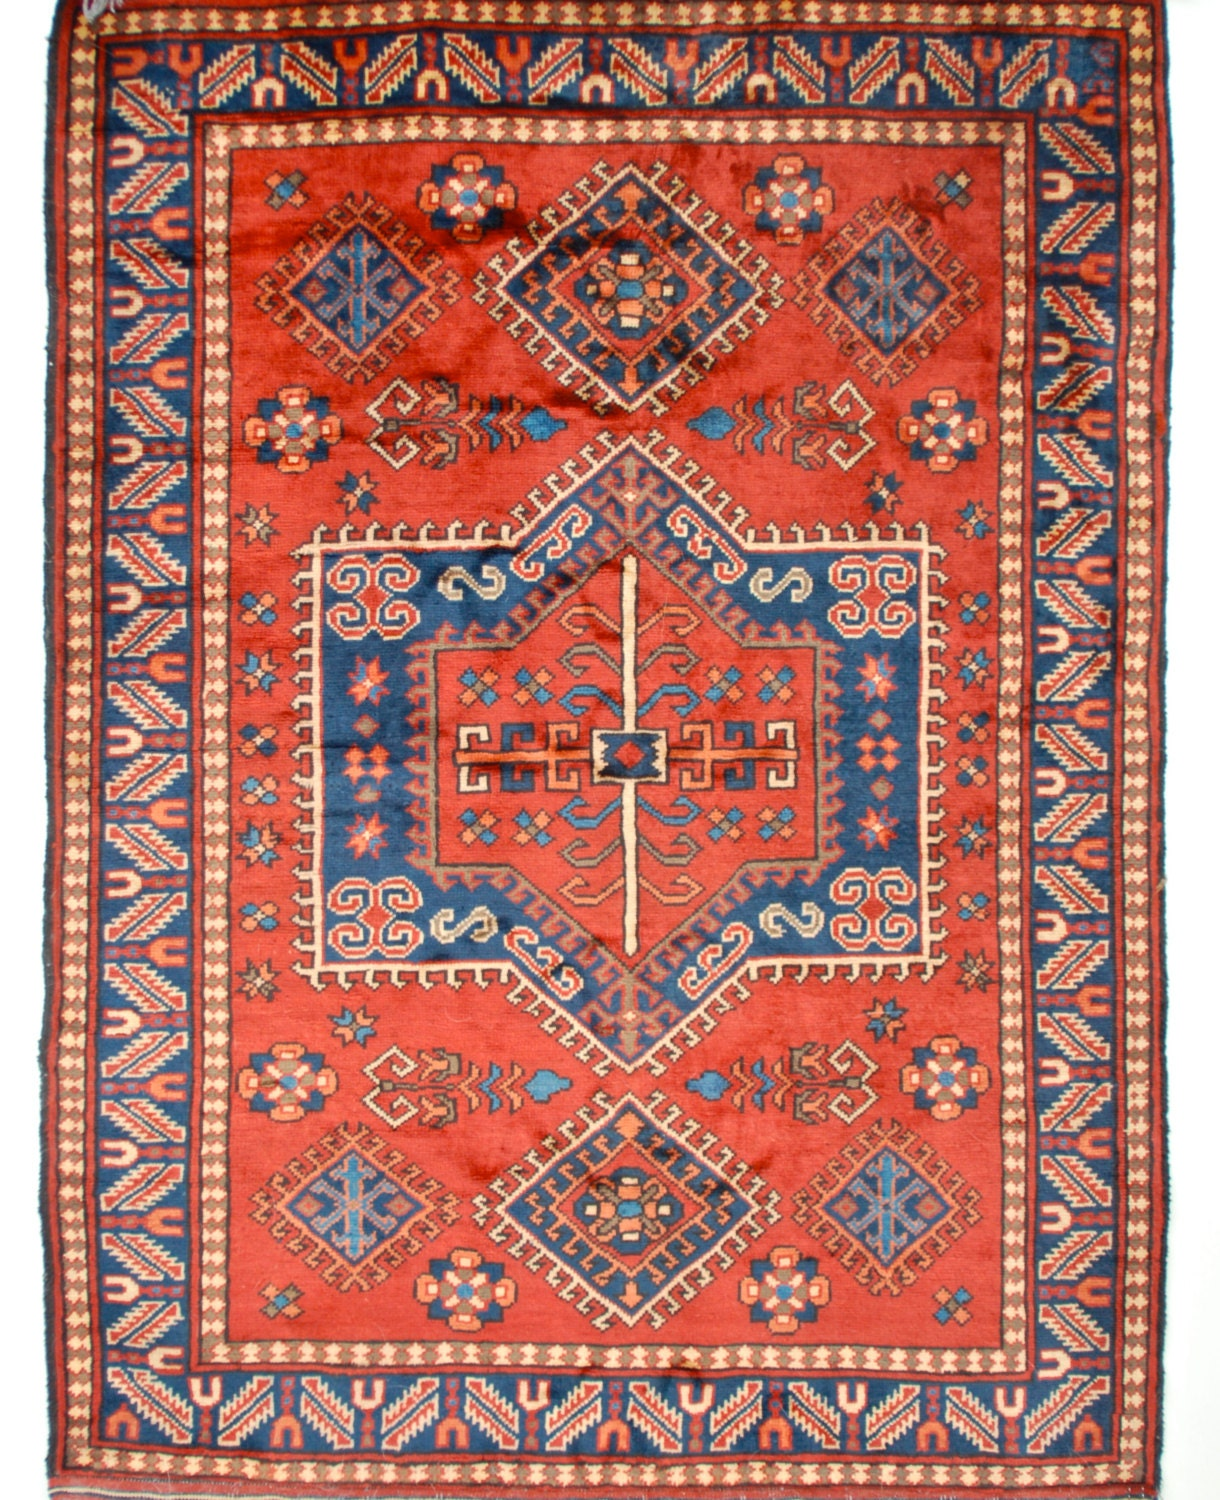 Handmade Turkish Rug Geometric Medallion Red And Blue Wool 5